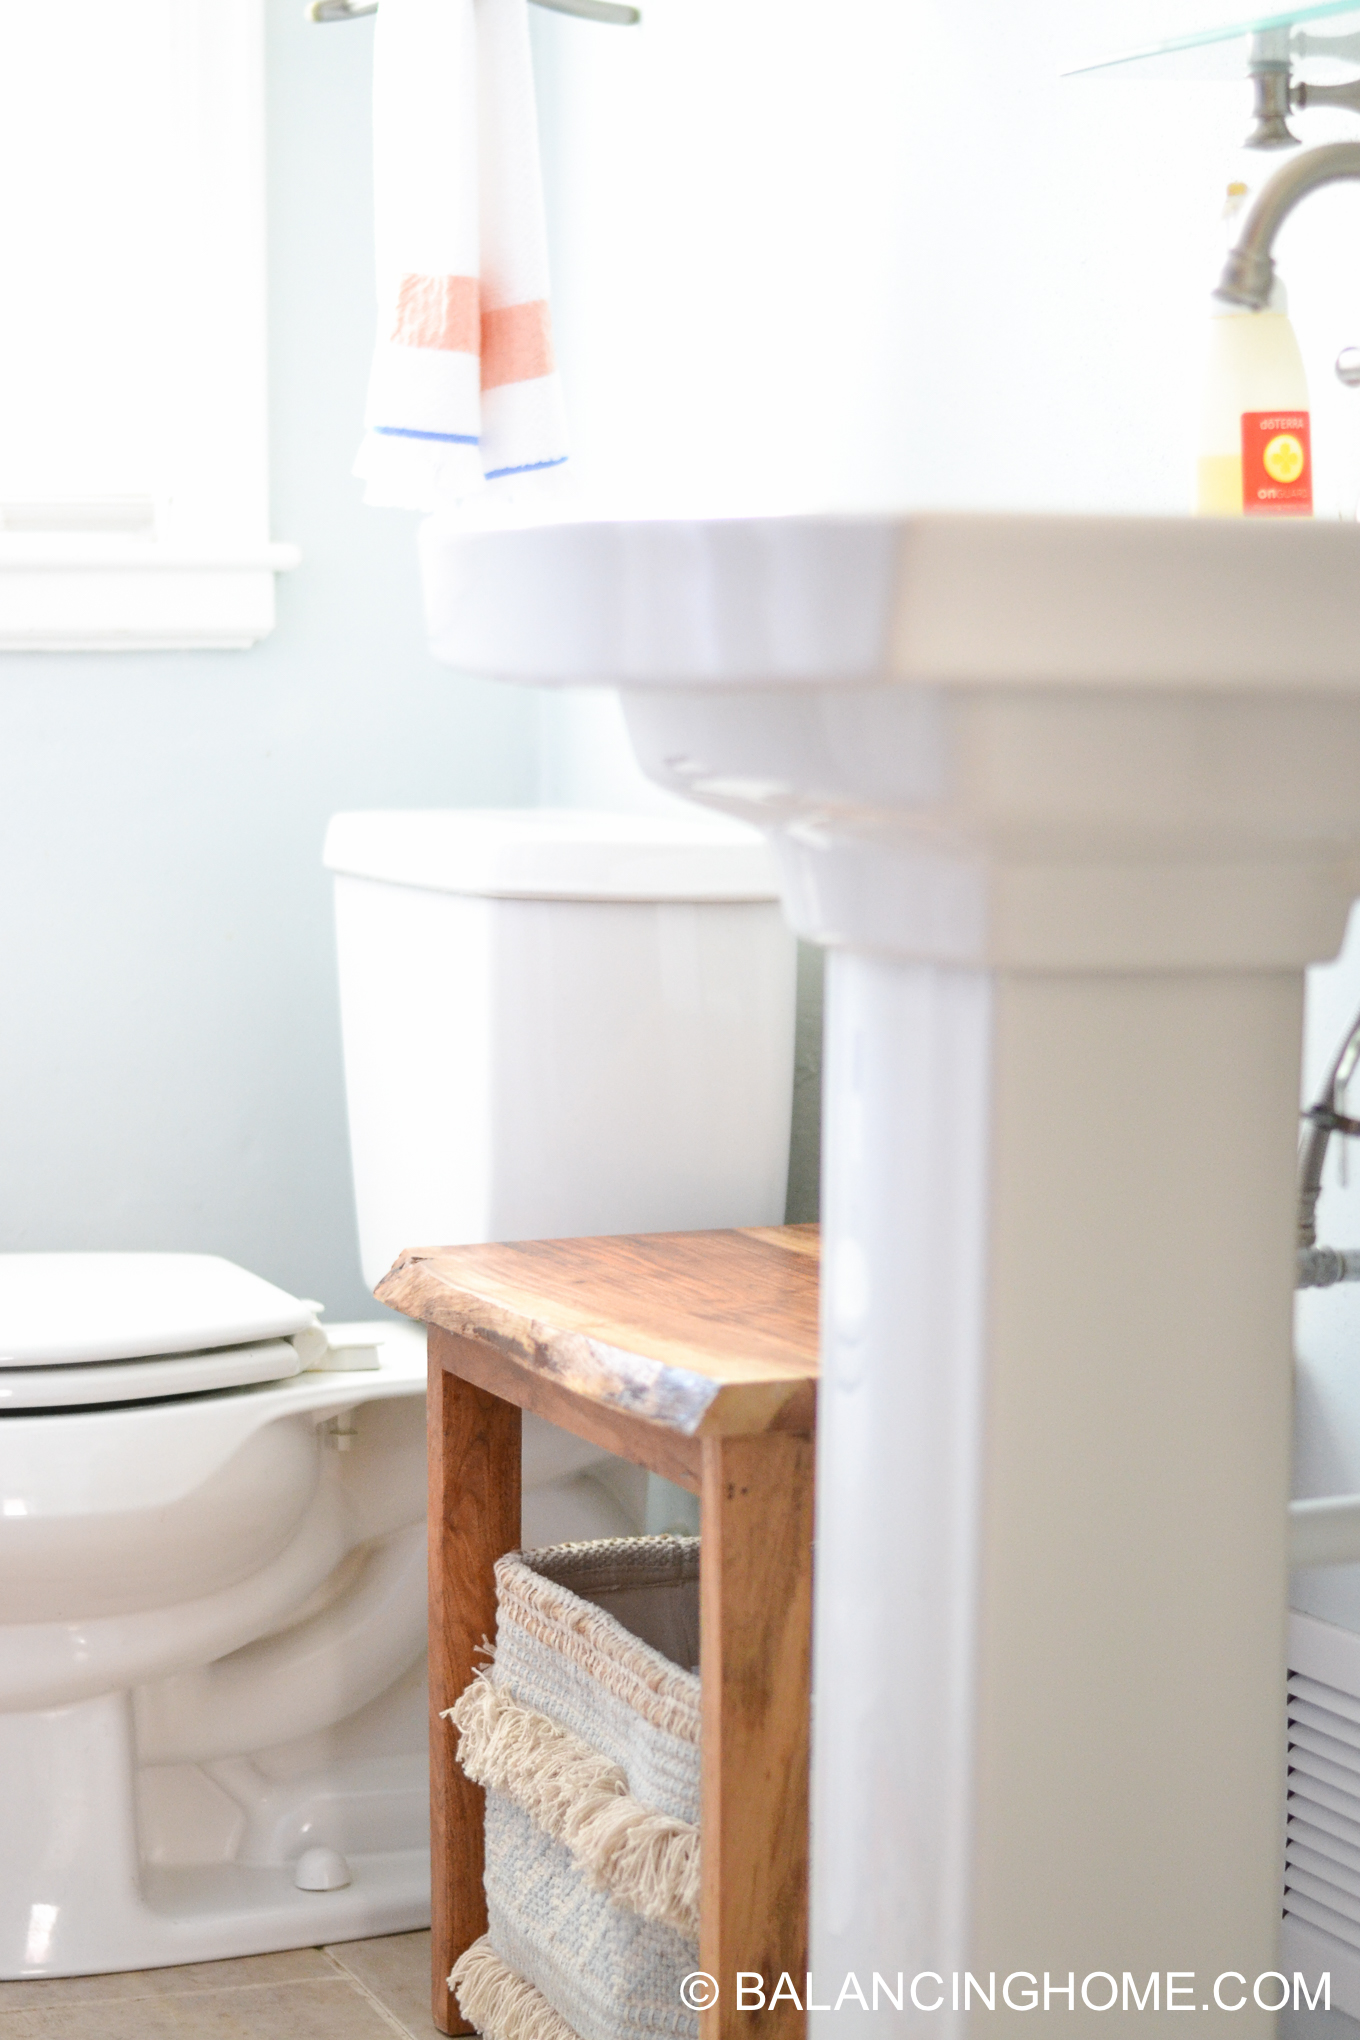 small bathroom ideas- live edge wood stool and storage hack